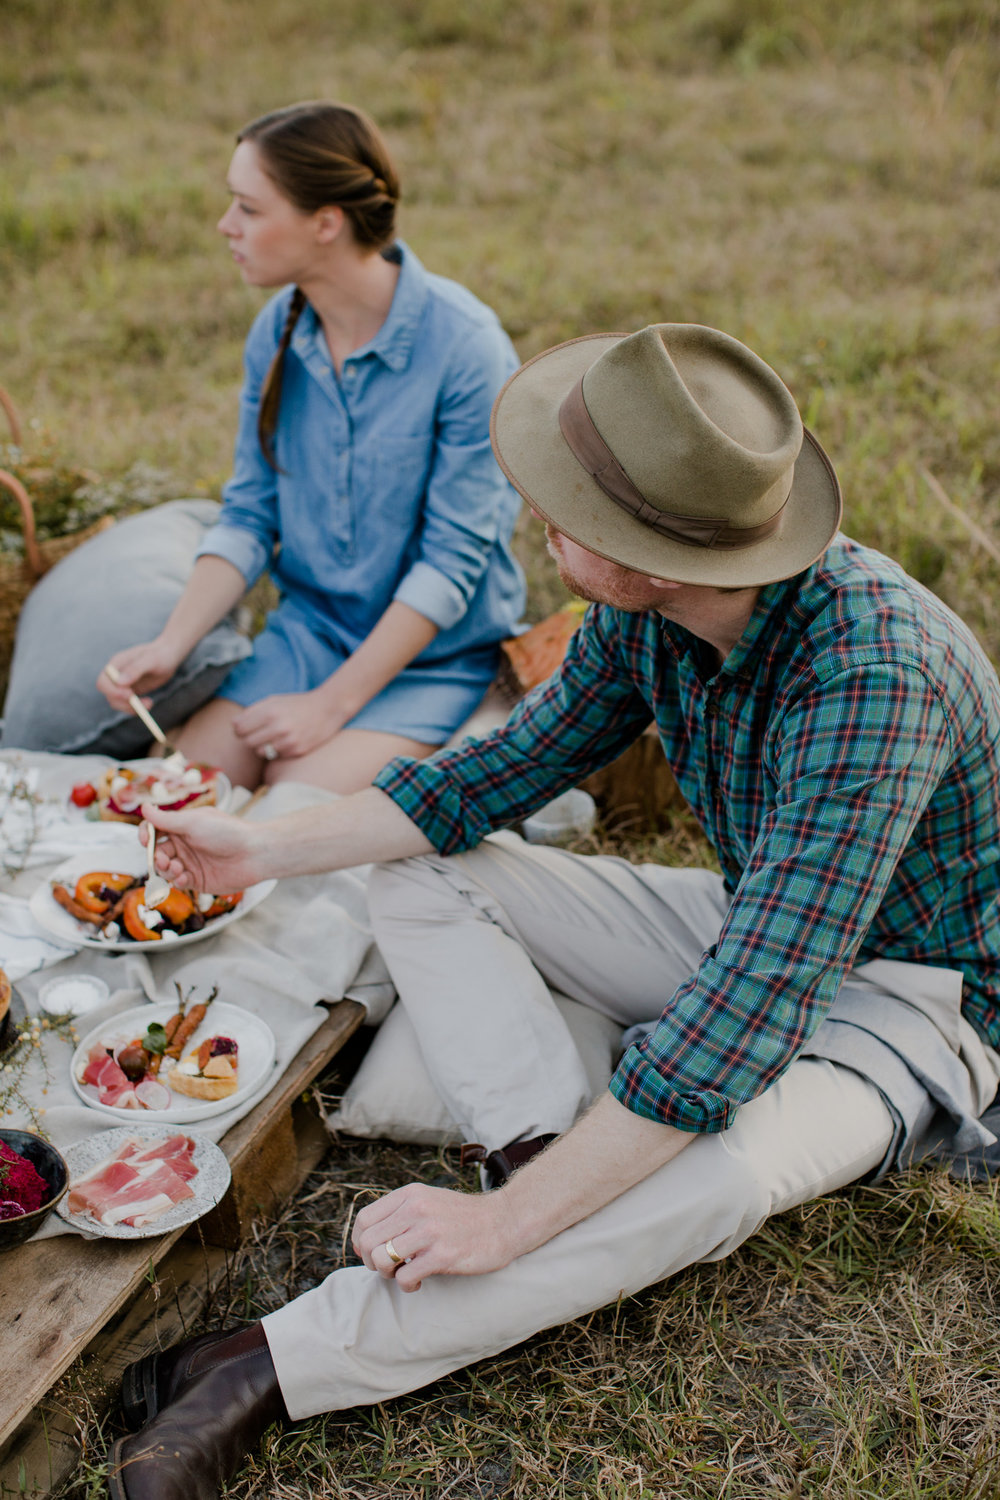 Rustic fall picnic featured on Inspired by This | Photographer: Tammie Joske